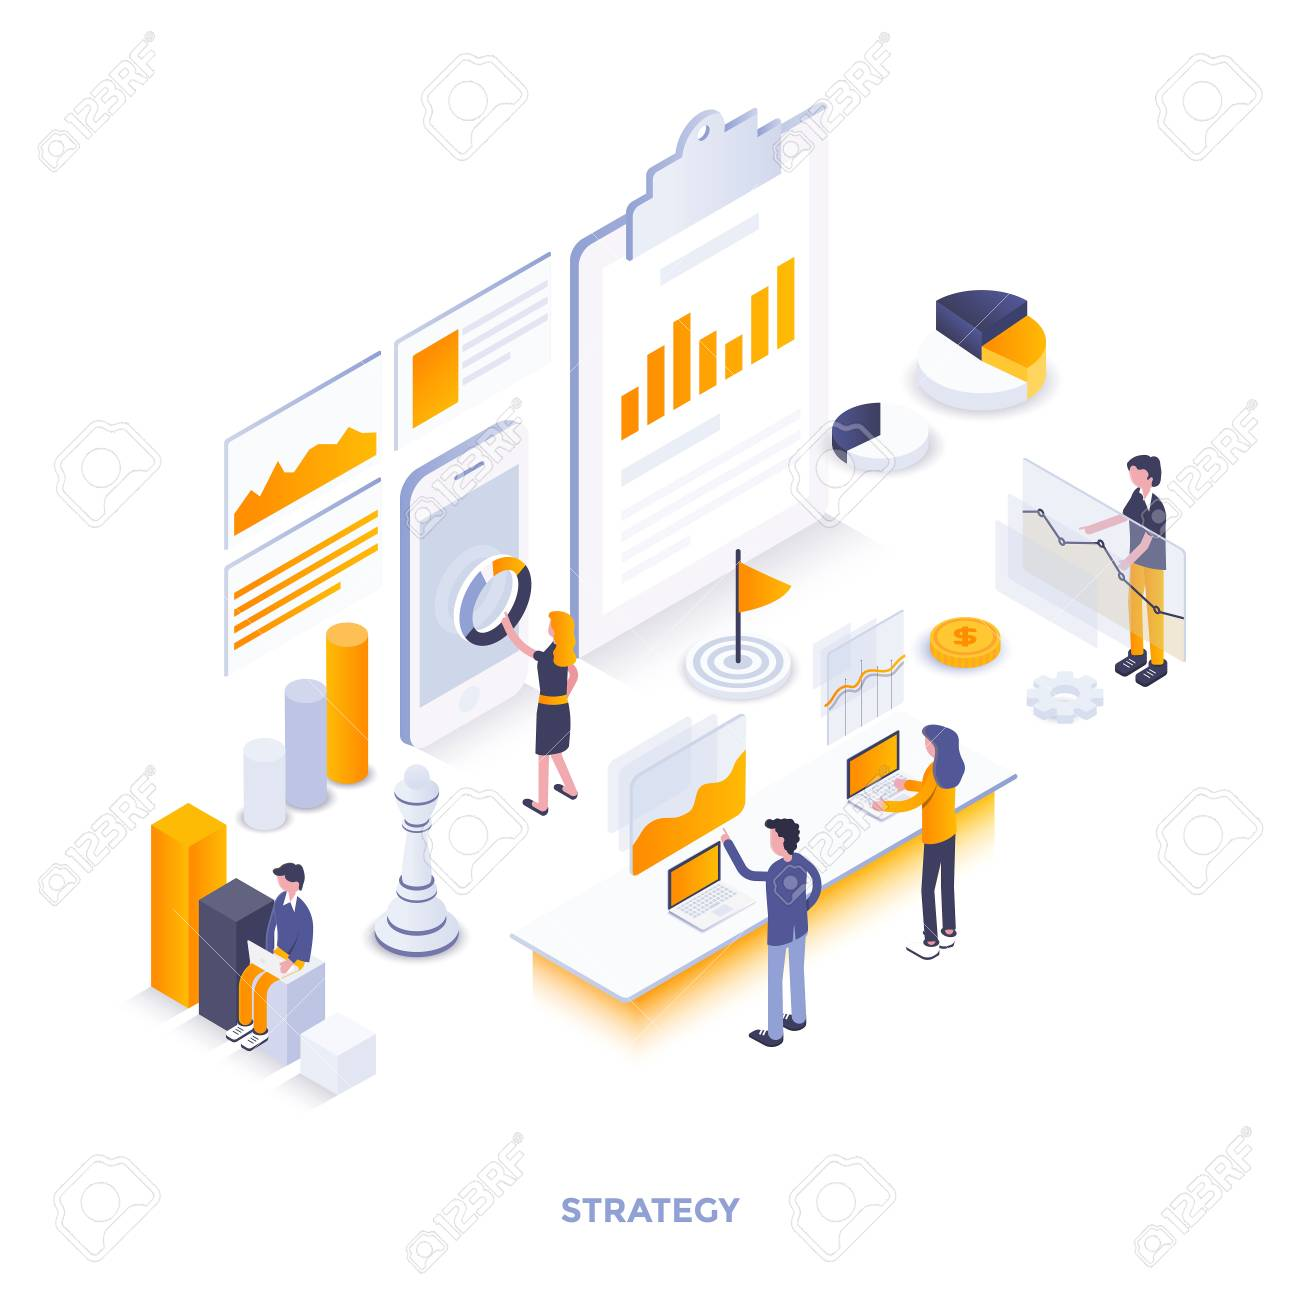 Modern flat design isometric illustration of Strategy. Can be used for website and mobile website or Landing page. Easy to edit and customize. Vector illustration - 104370481